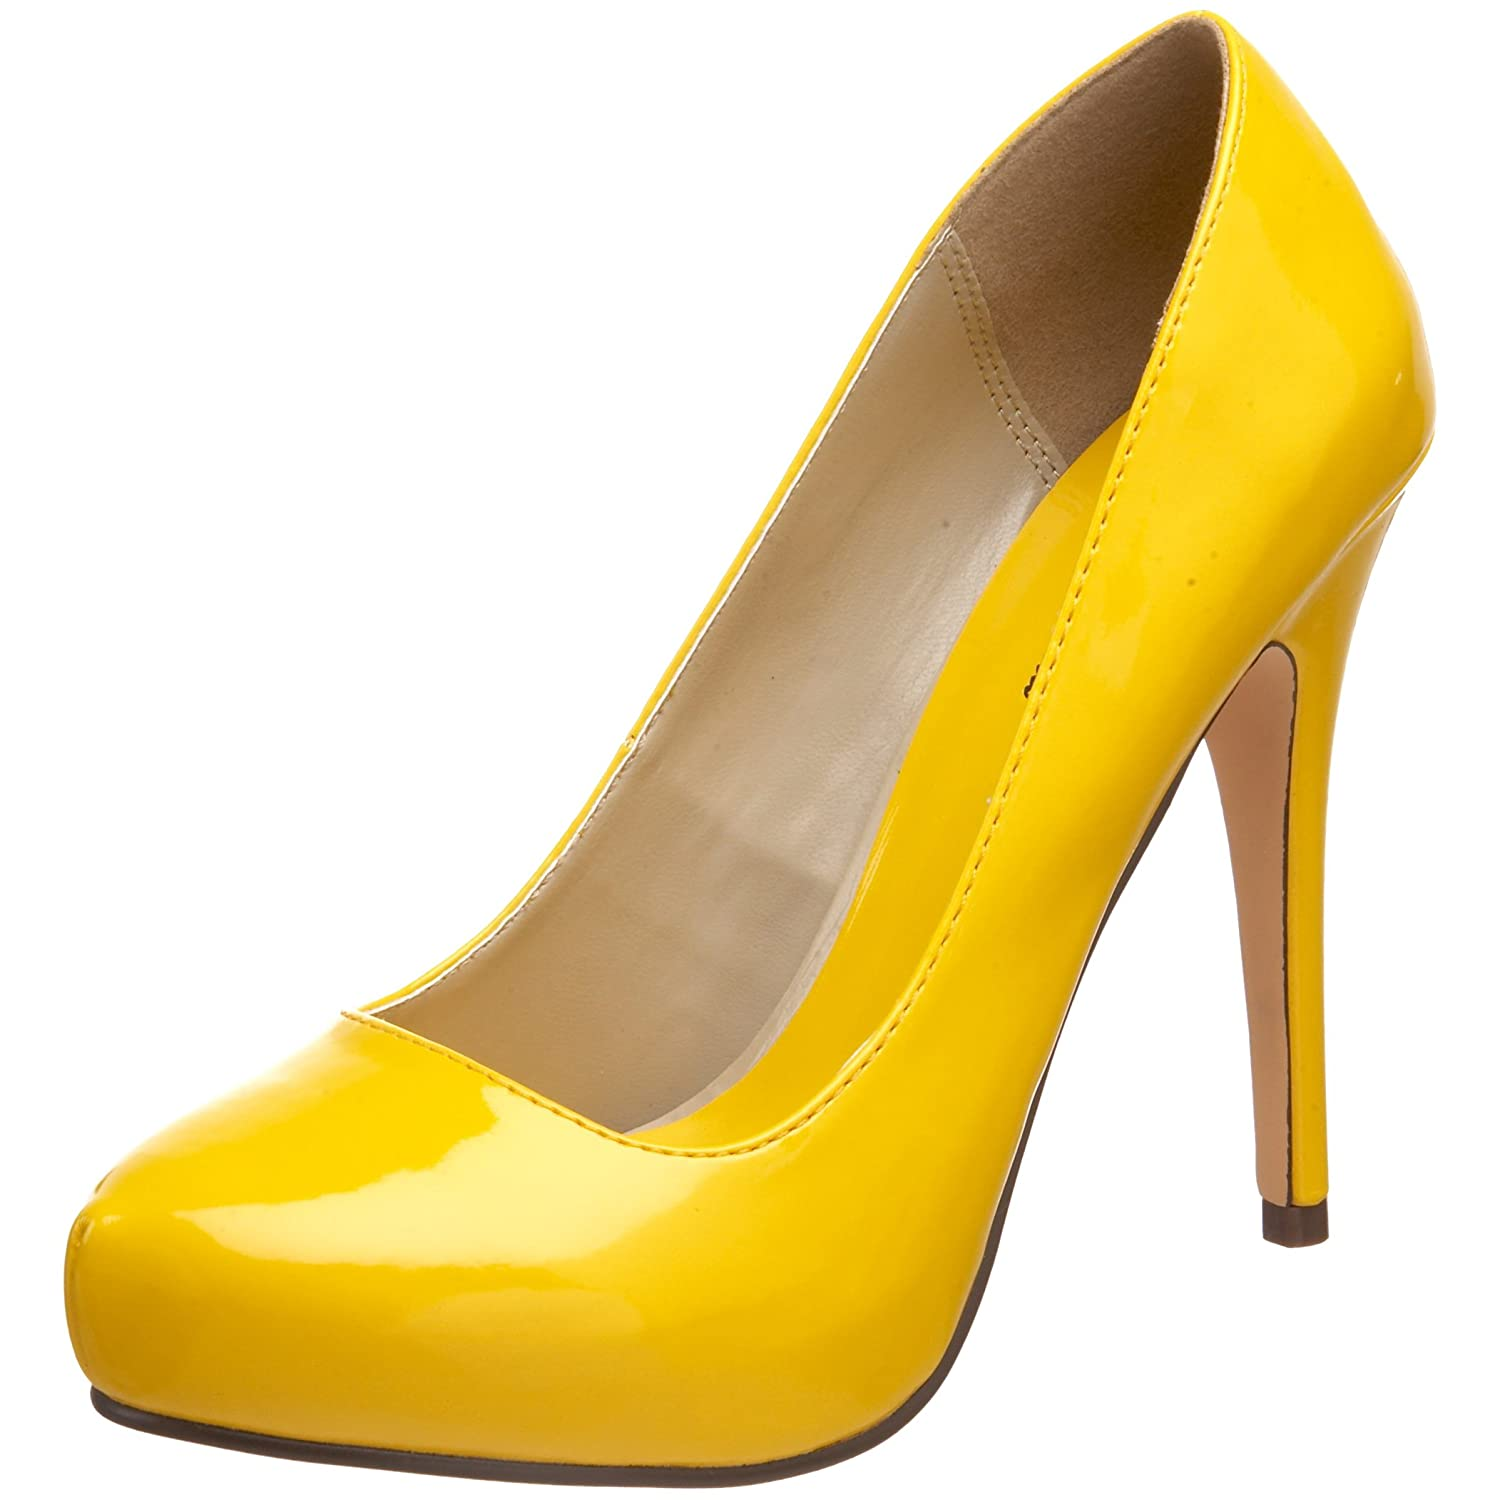 Which Yellow Shoes